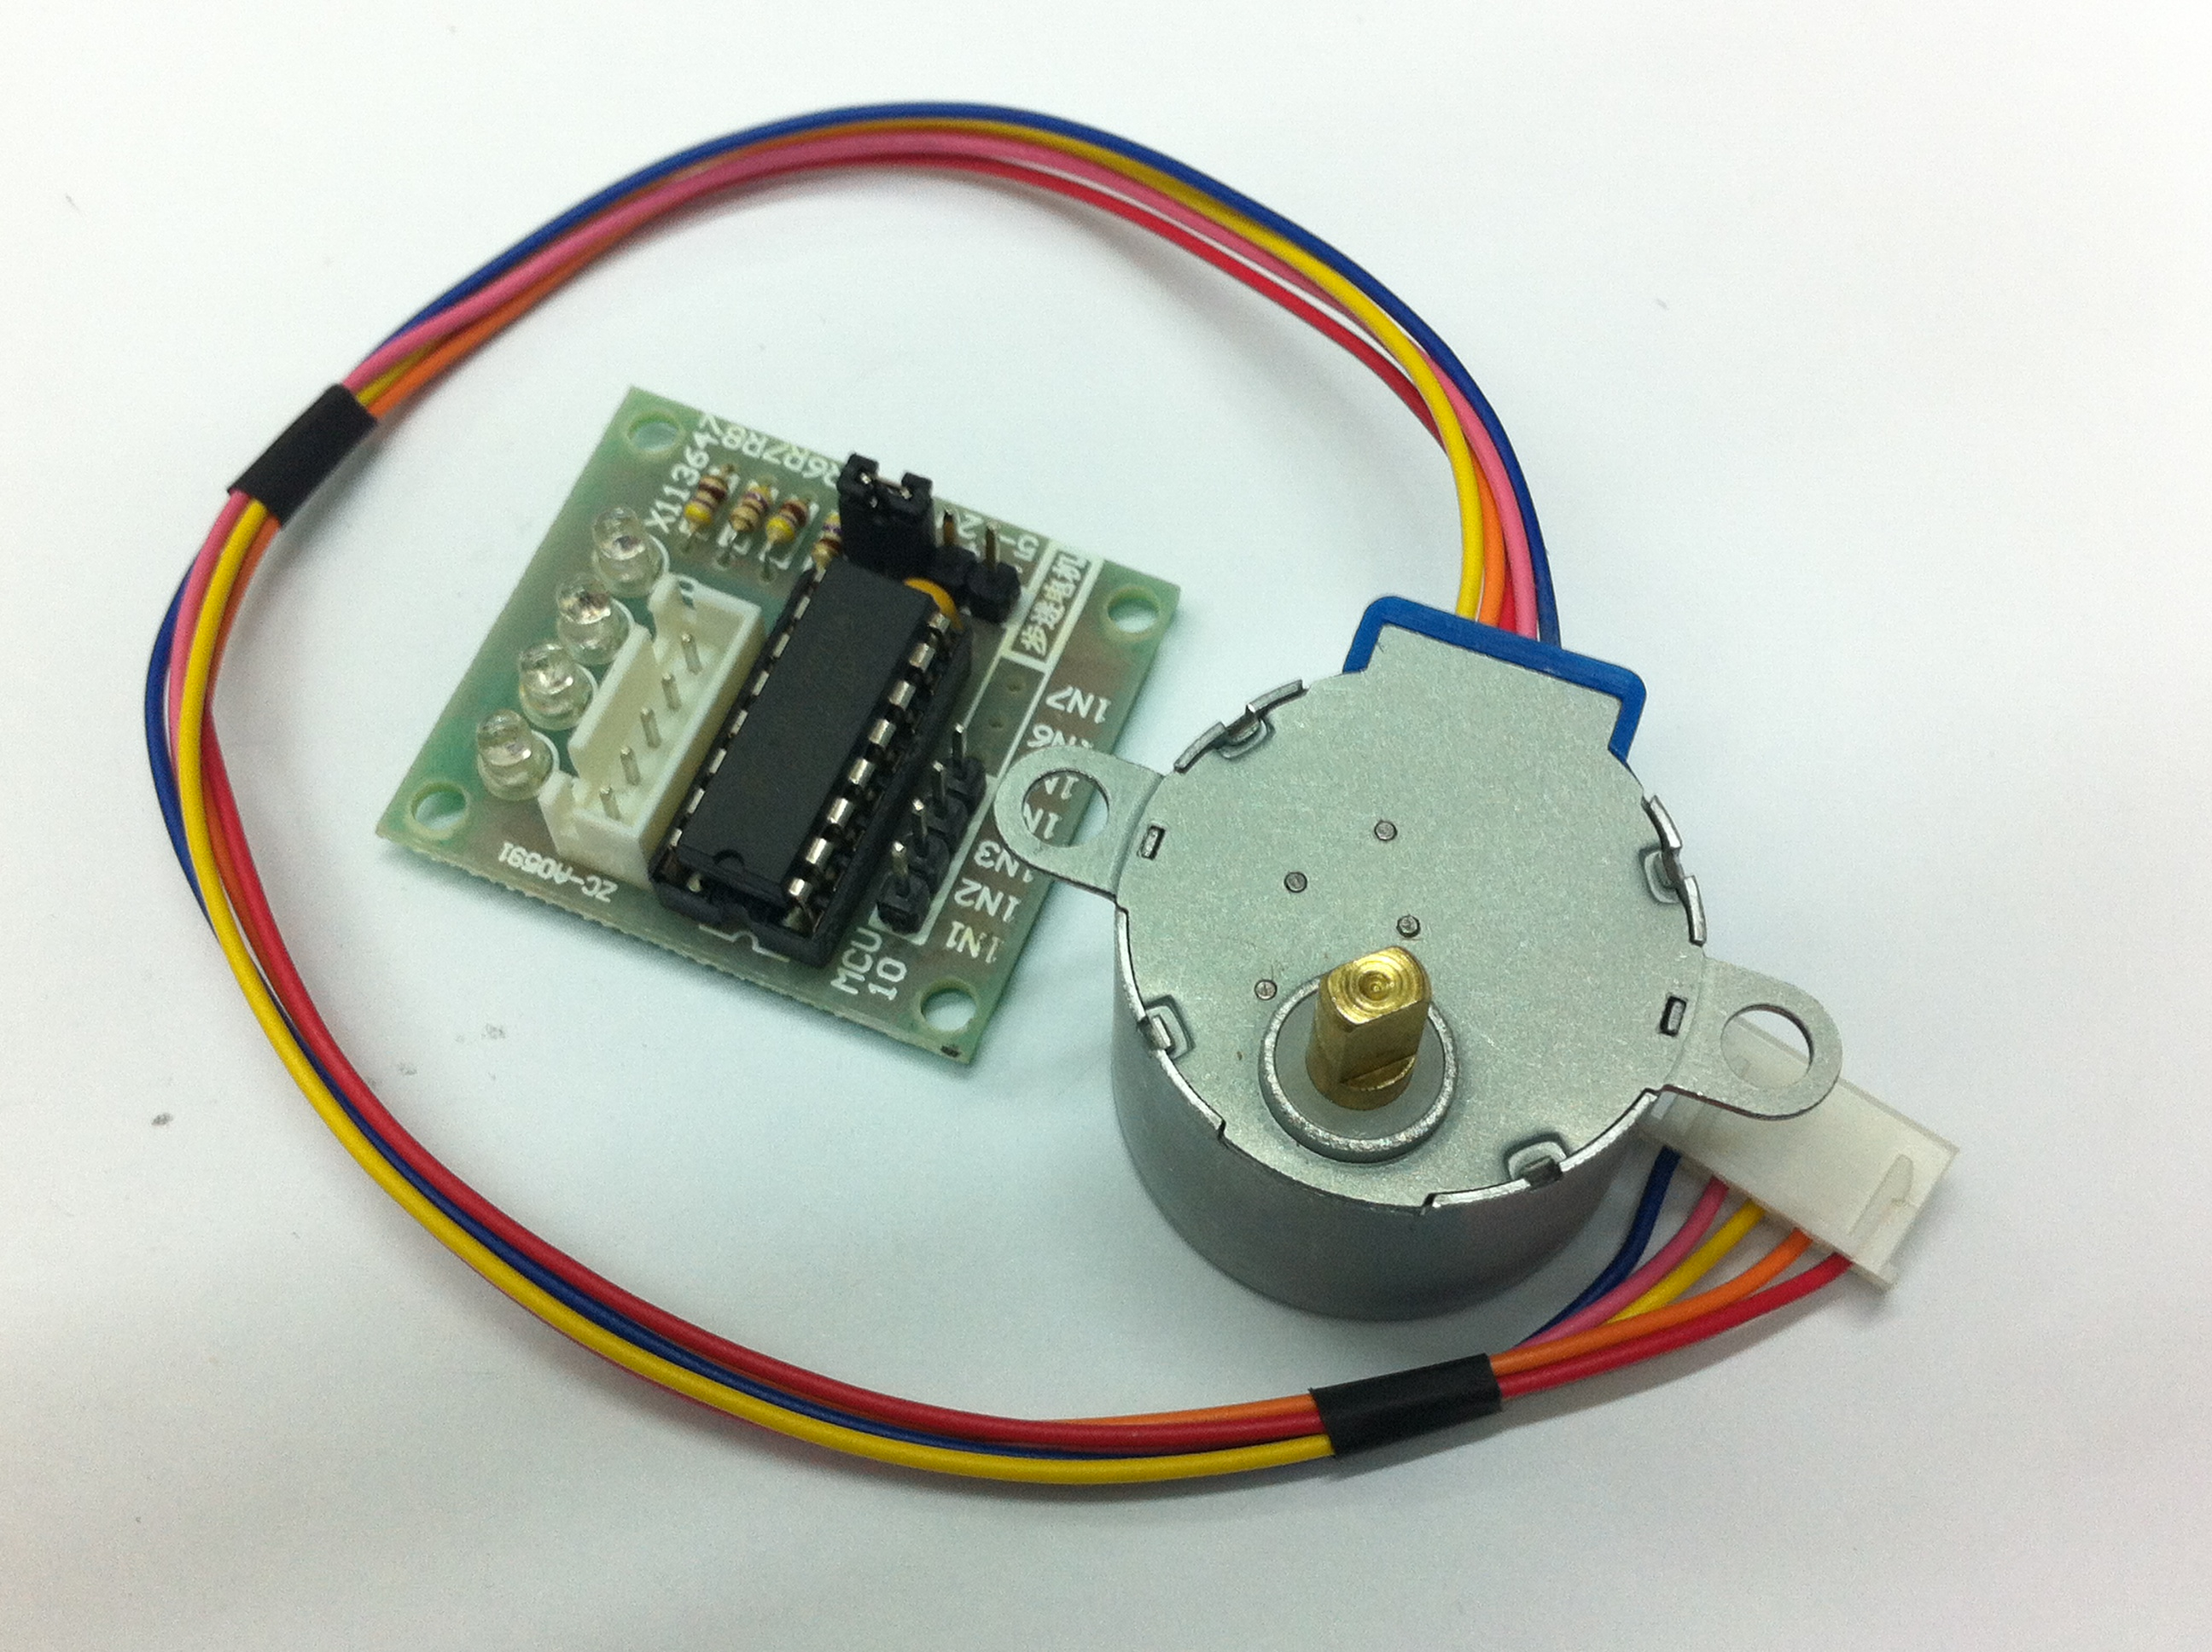 5v stepper motor 28byj 48 w drive test module board for How to check stepper motor